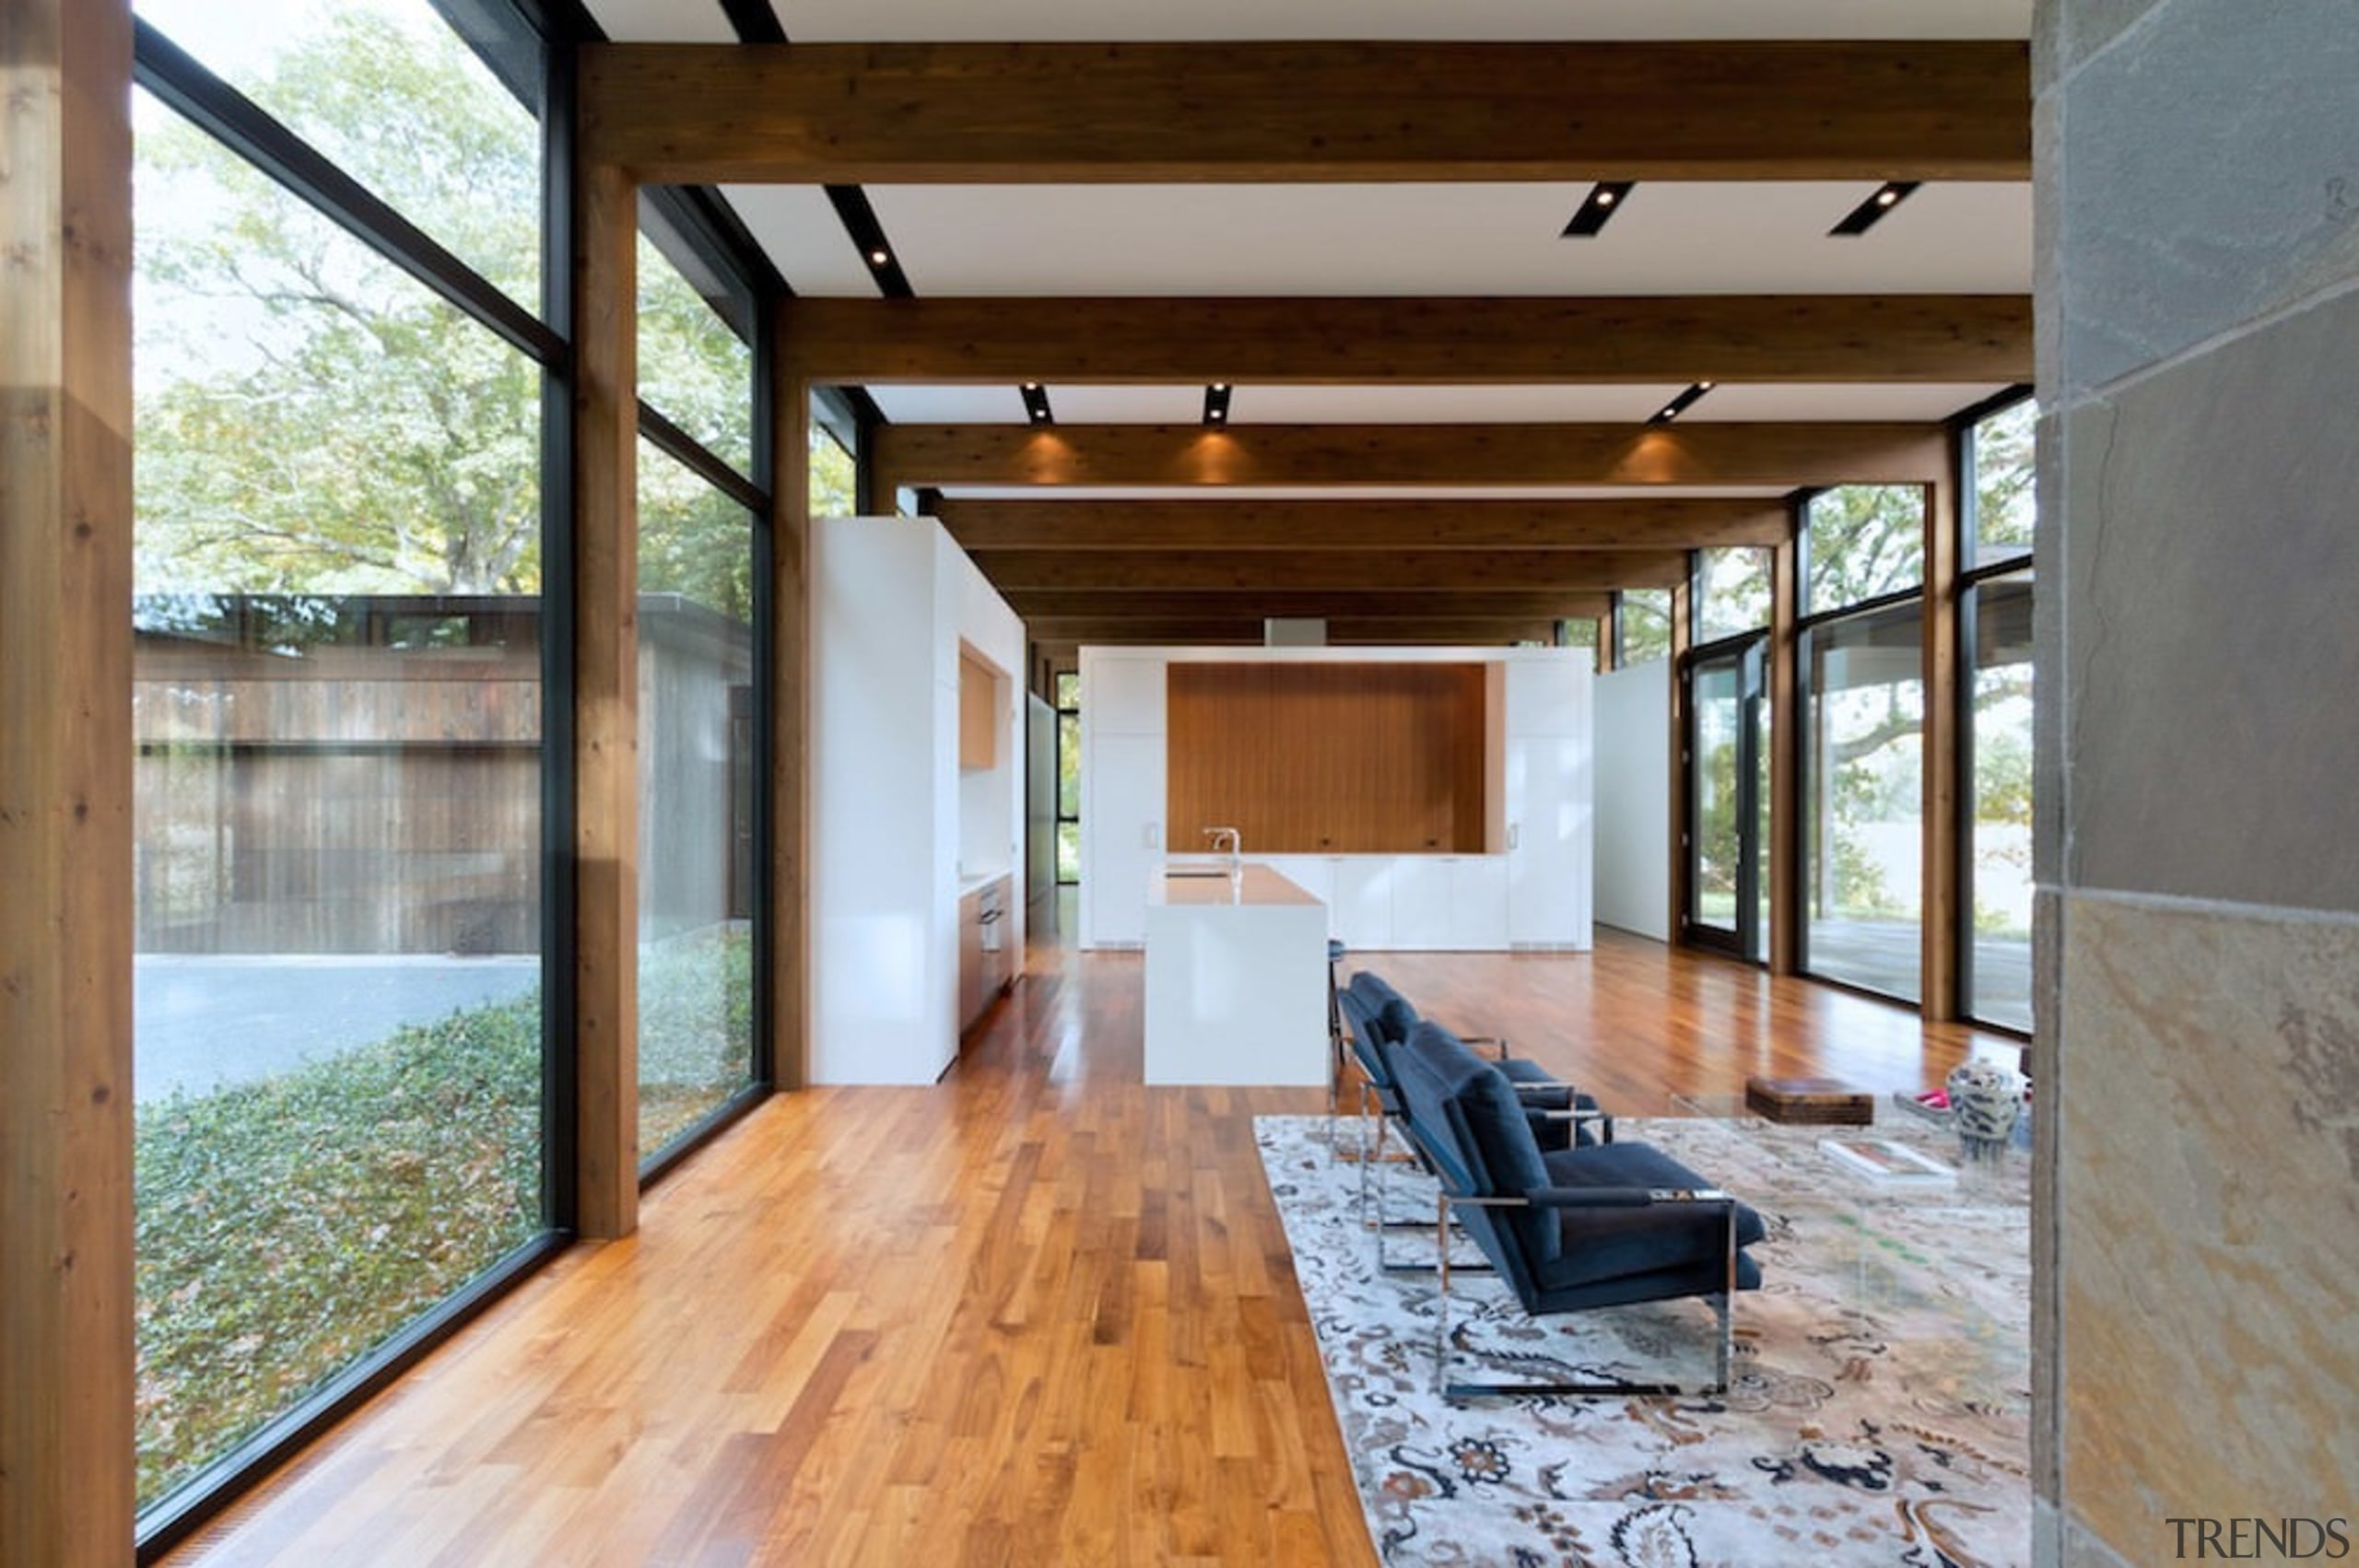 The living areas are spacious and open, featuring architecture, daylighting, estate, floor, flooring, hardwood, home, house, interior design, living room, real estate, window, wood, wood flooring, gray, brown